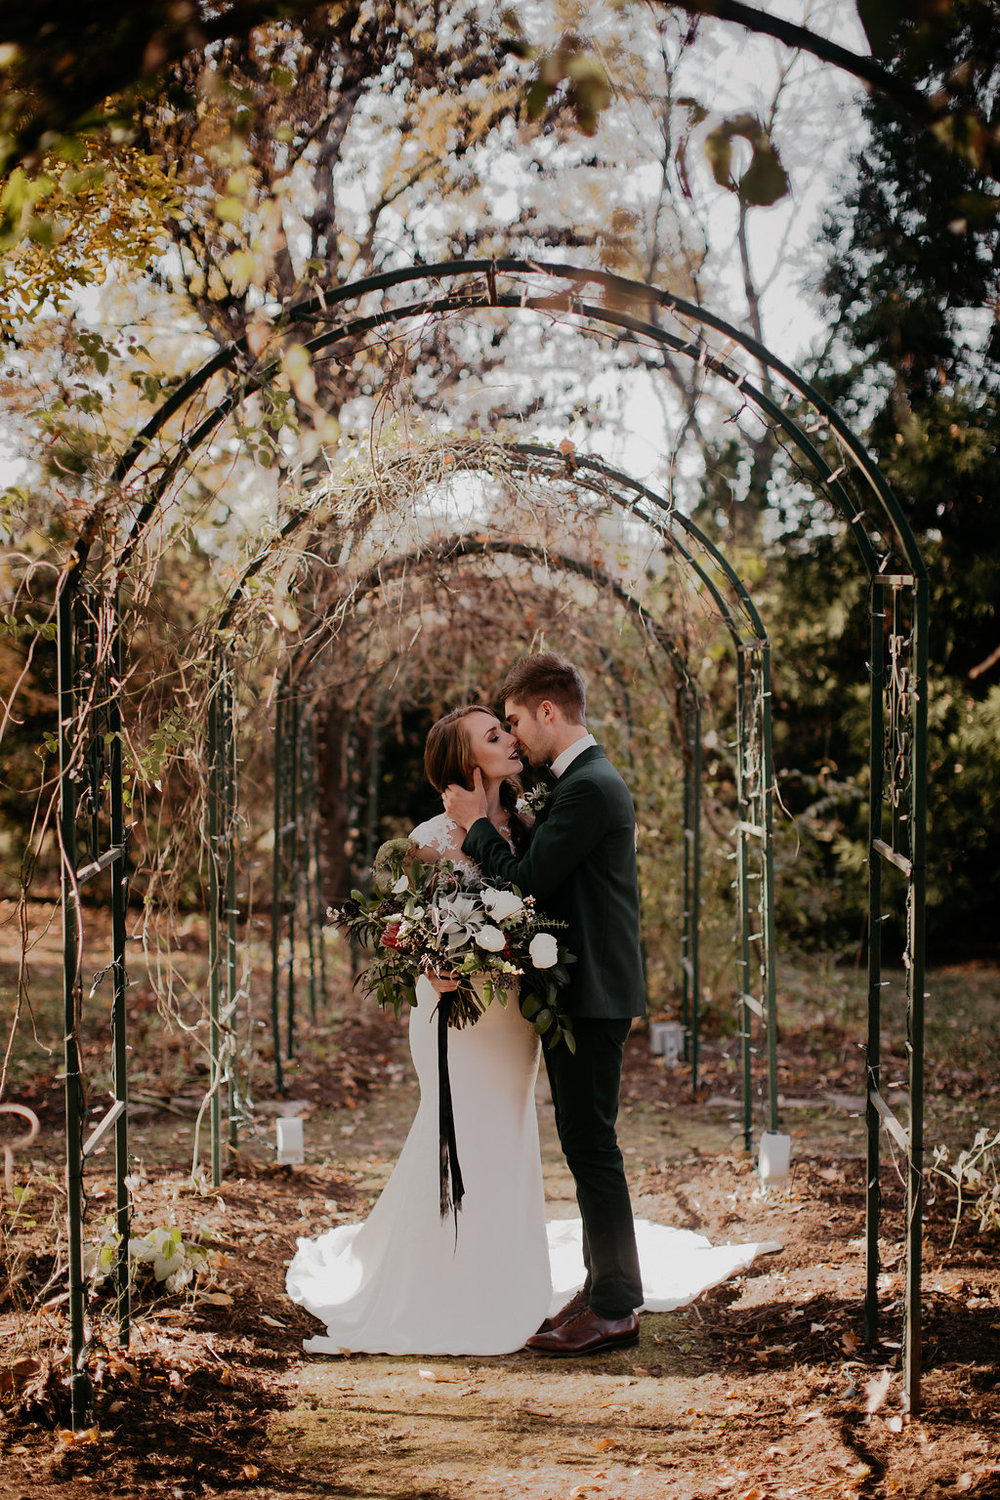 Riverwood Mansion Winter Wedding Inspiration // Nashville Floral Design